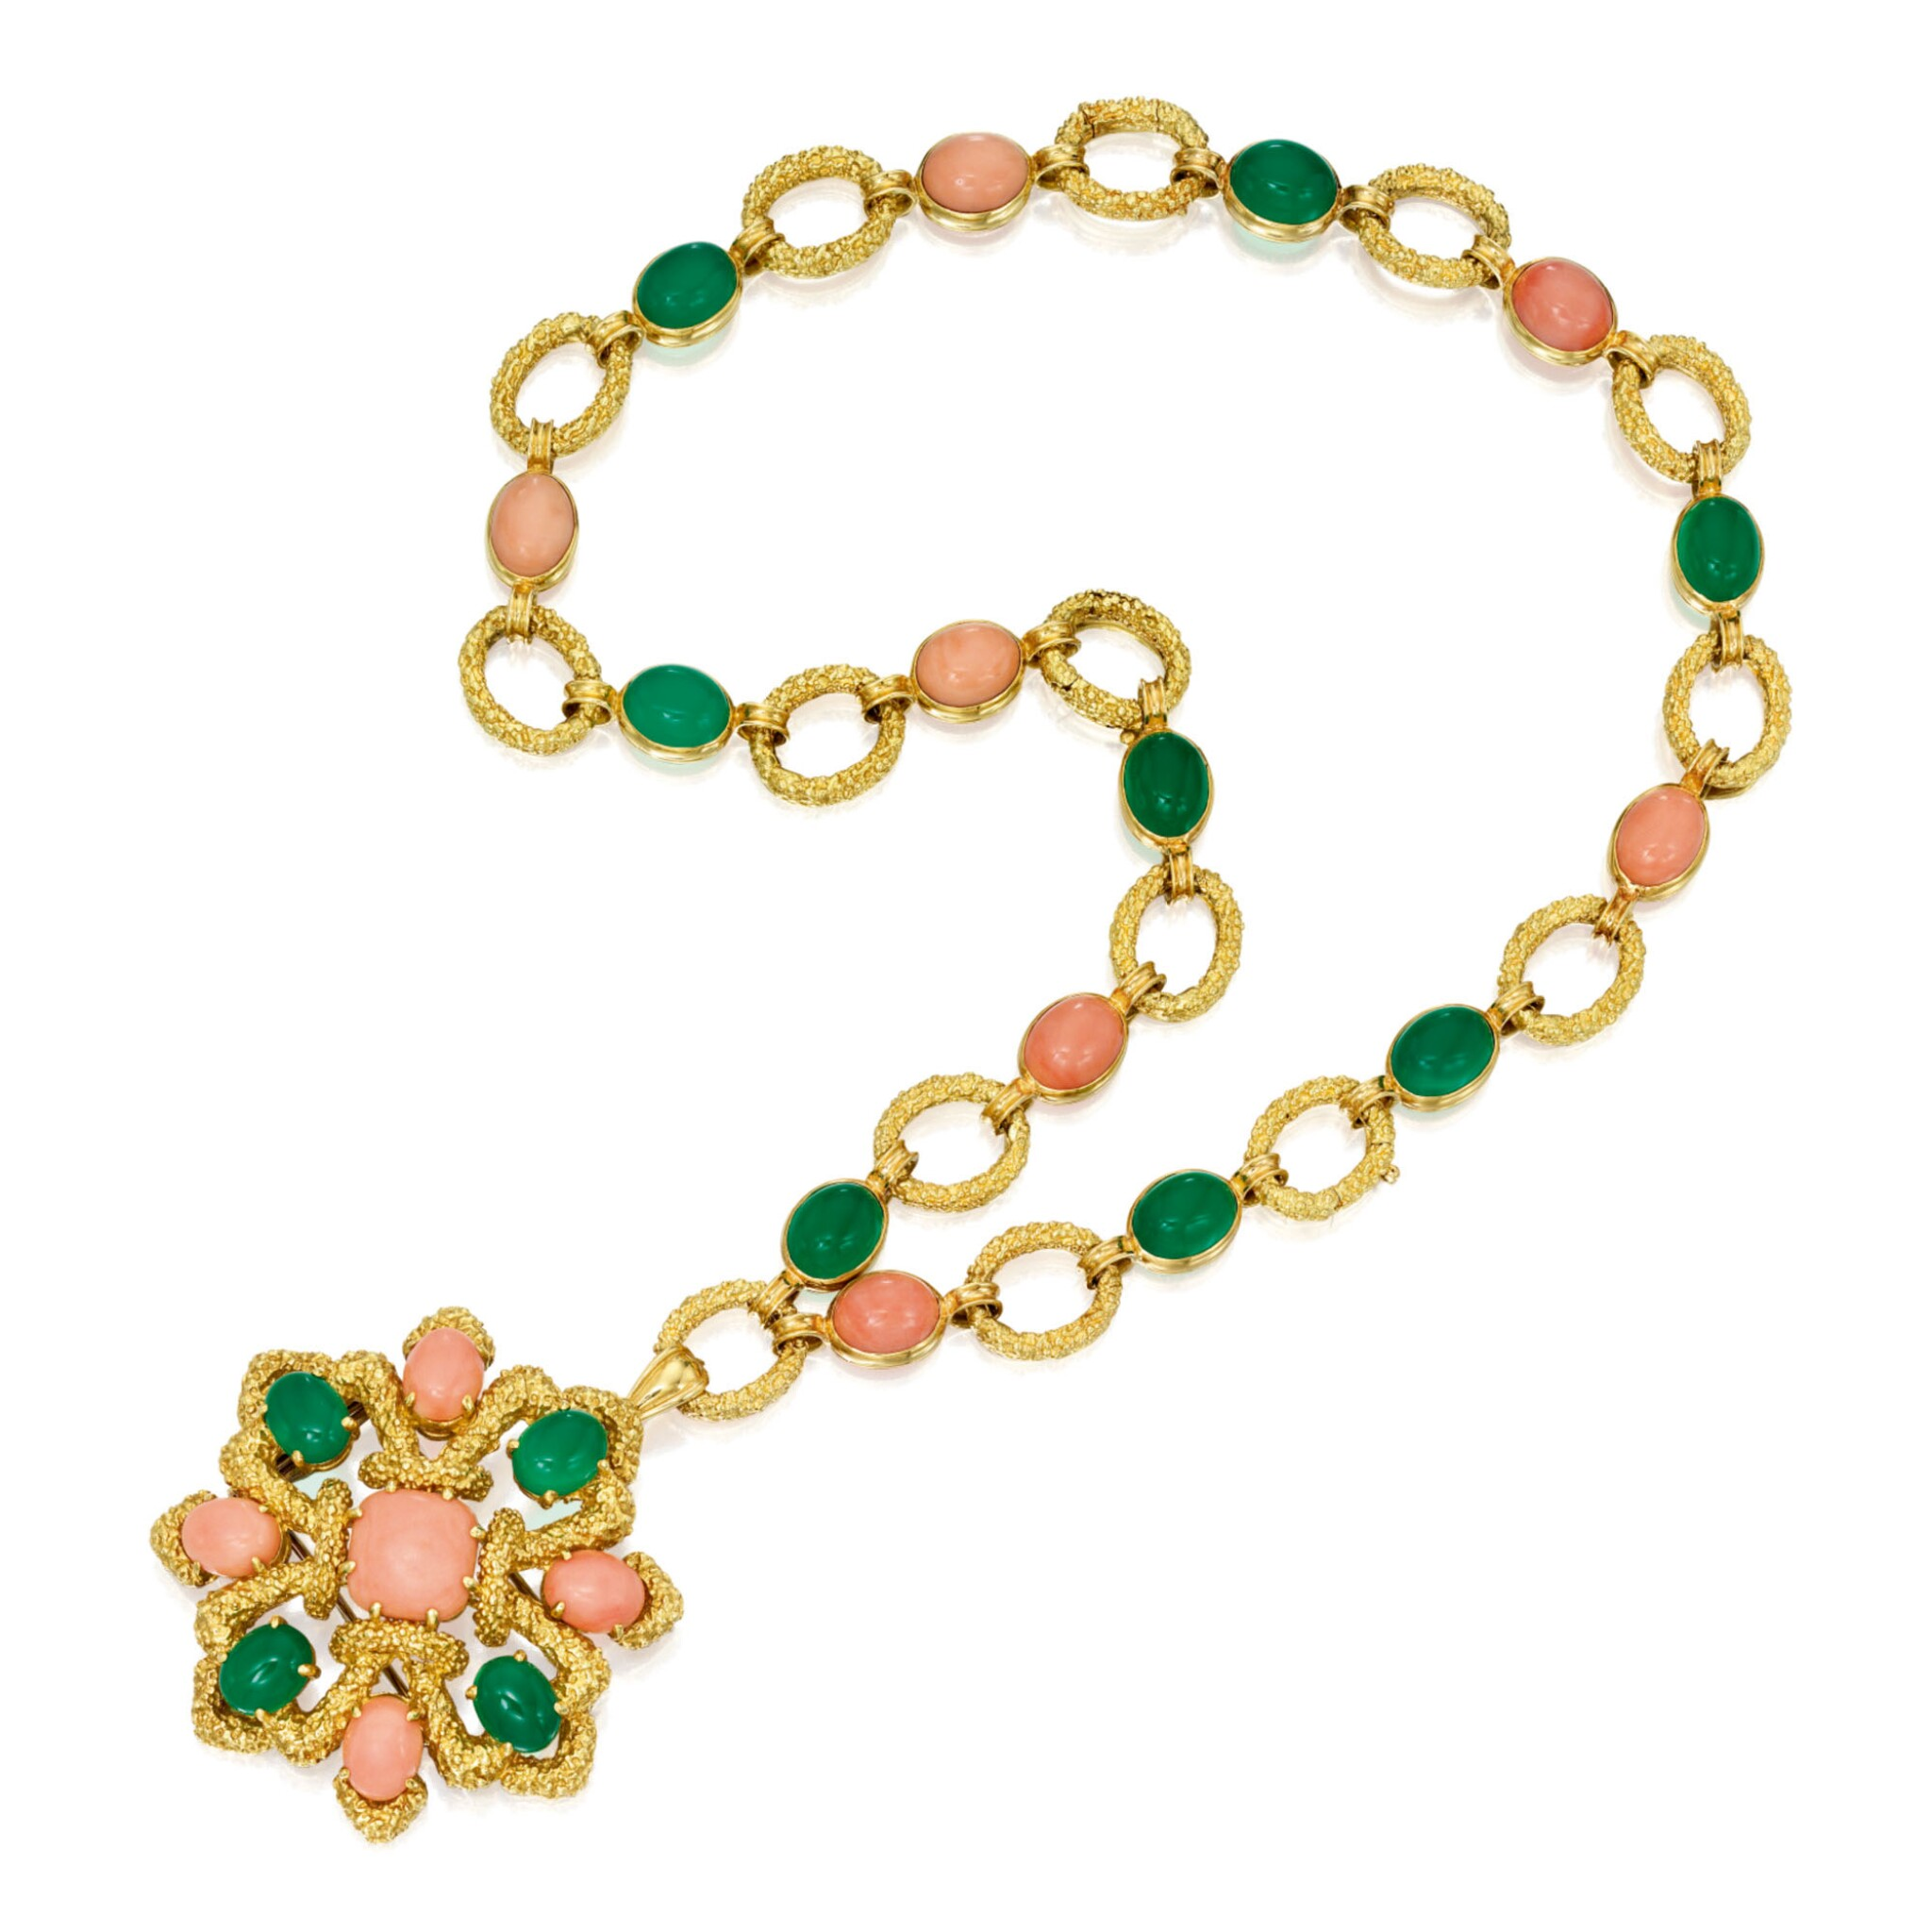 View full screen - View 1 of Lot 409. GOLD, CORAL AND CHRYSOPRASE PENDANT-NECKLACE, VAN CLEEF & ARPELS, FRANCE   黃金鑲珊瑚及綠玉髓吊墜項鏈,梵克雅寶.